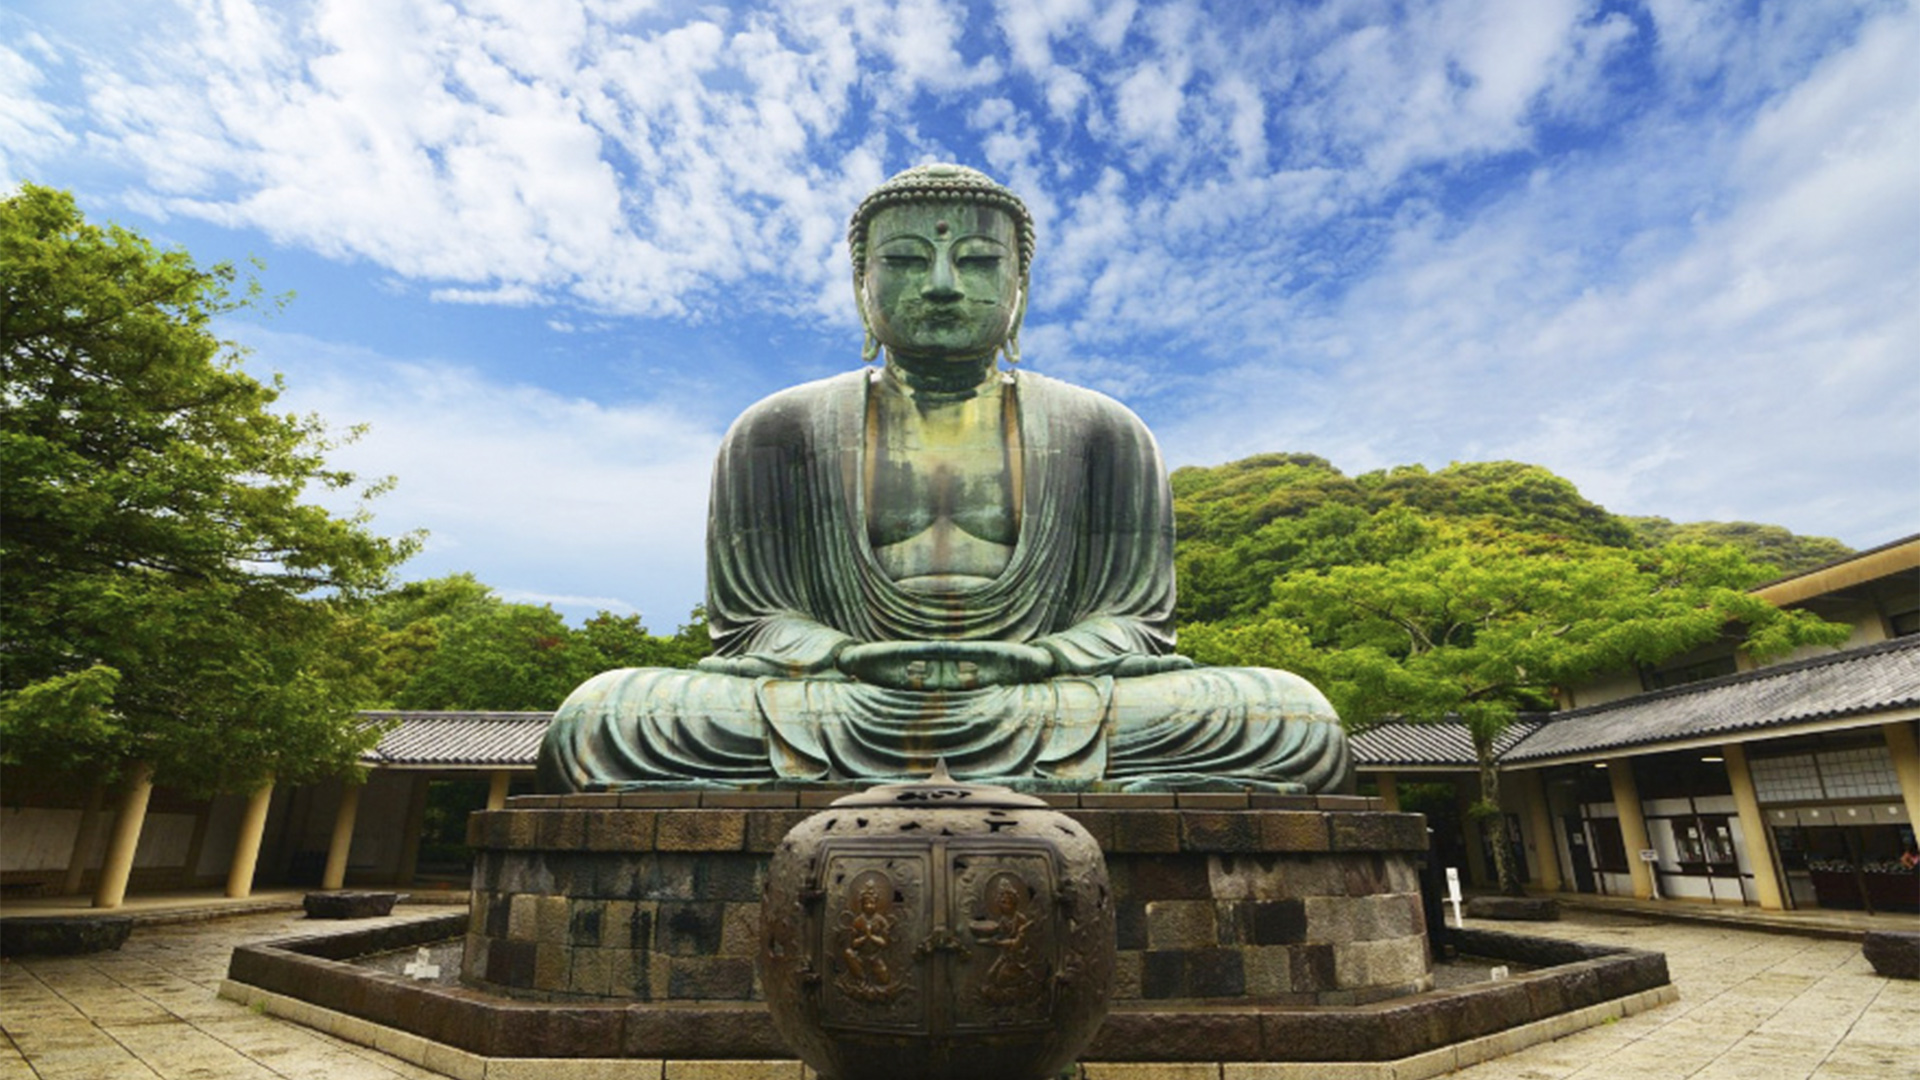 the great buddha daibutsu04151